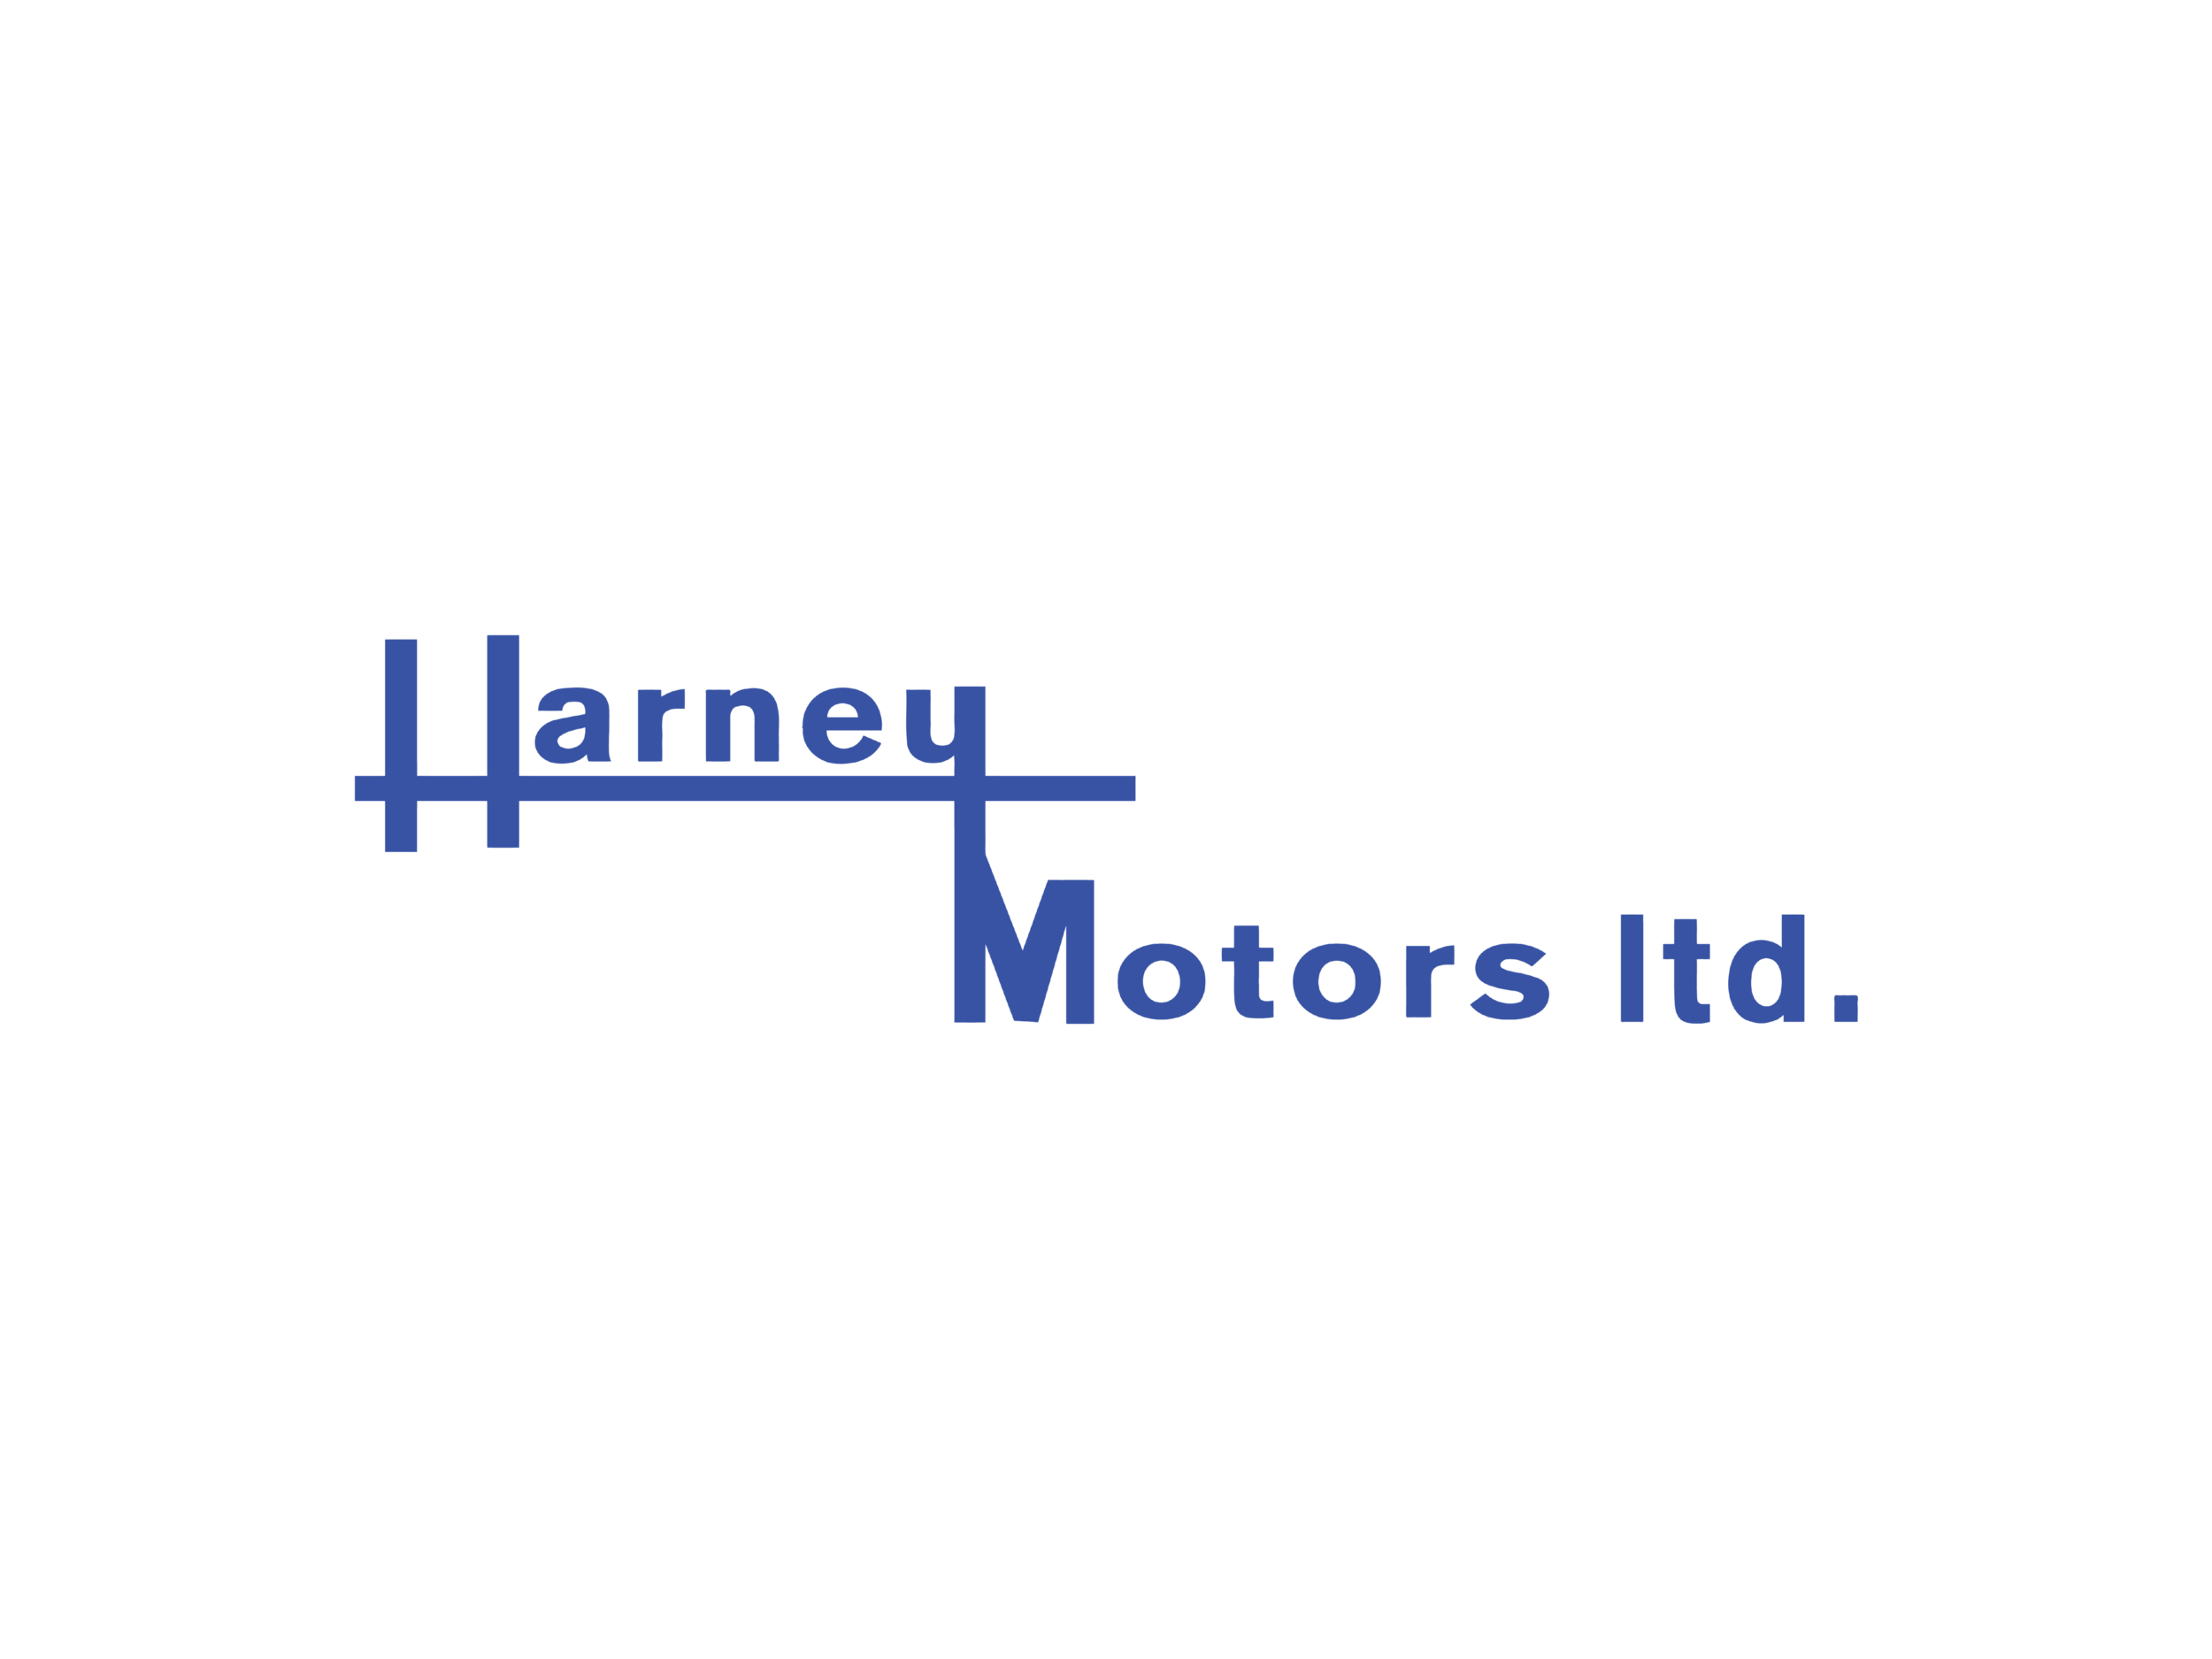 harney logo.png